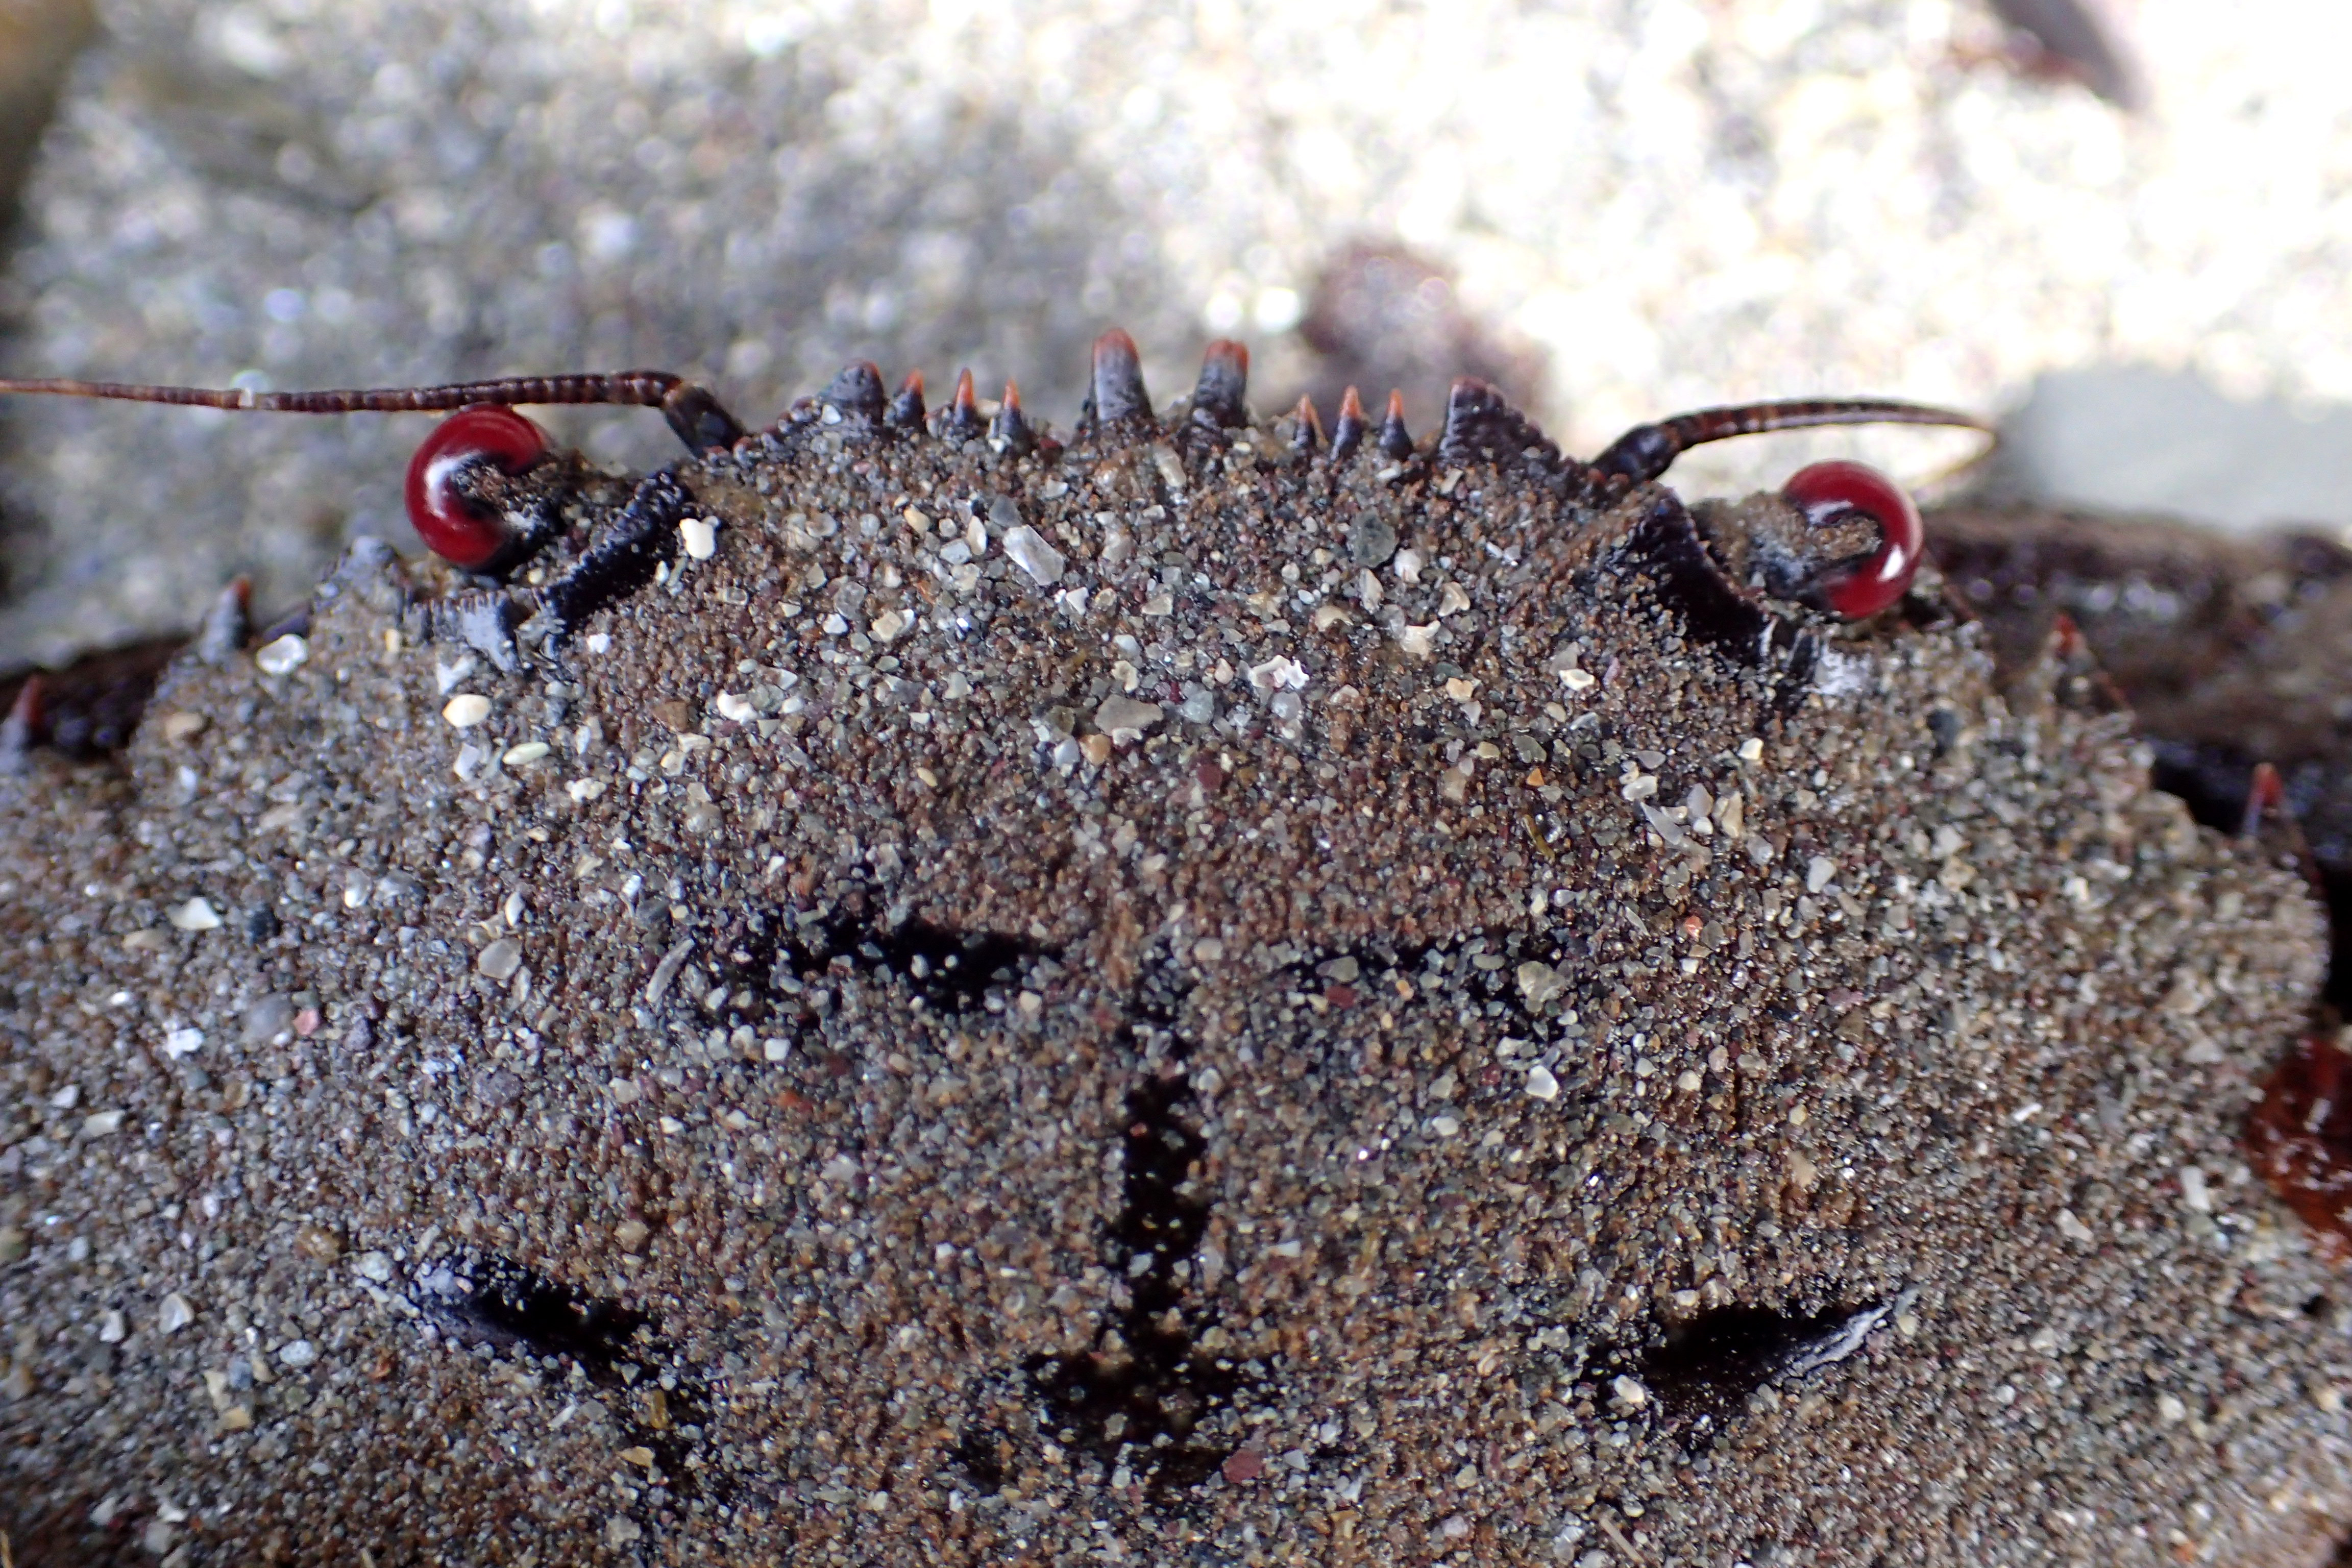 The unmistakeable red eyes of the velvet swimming crab.